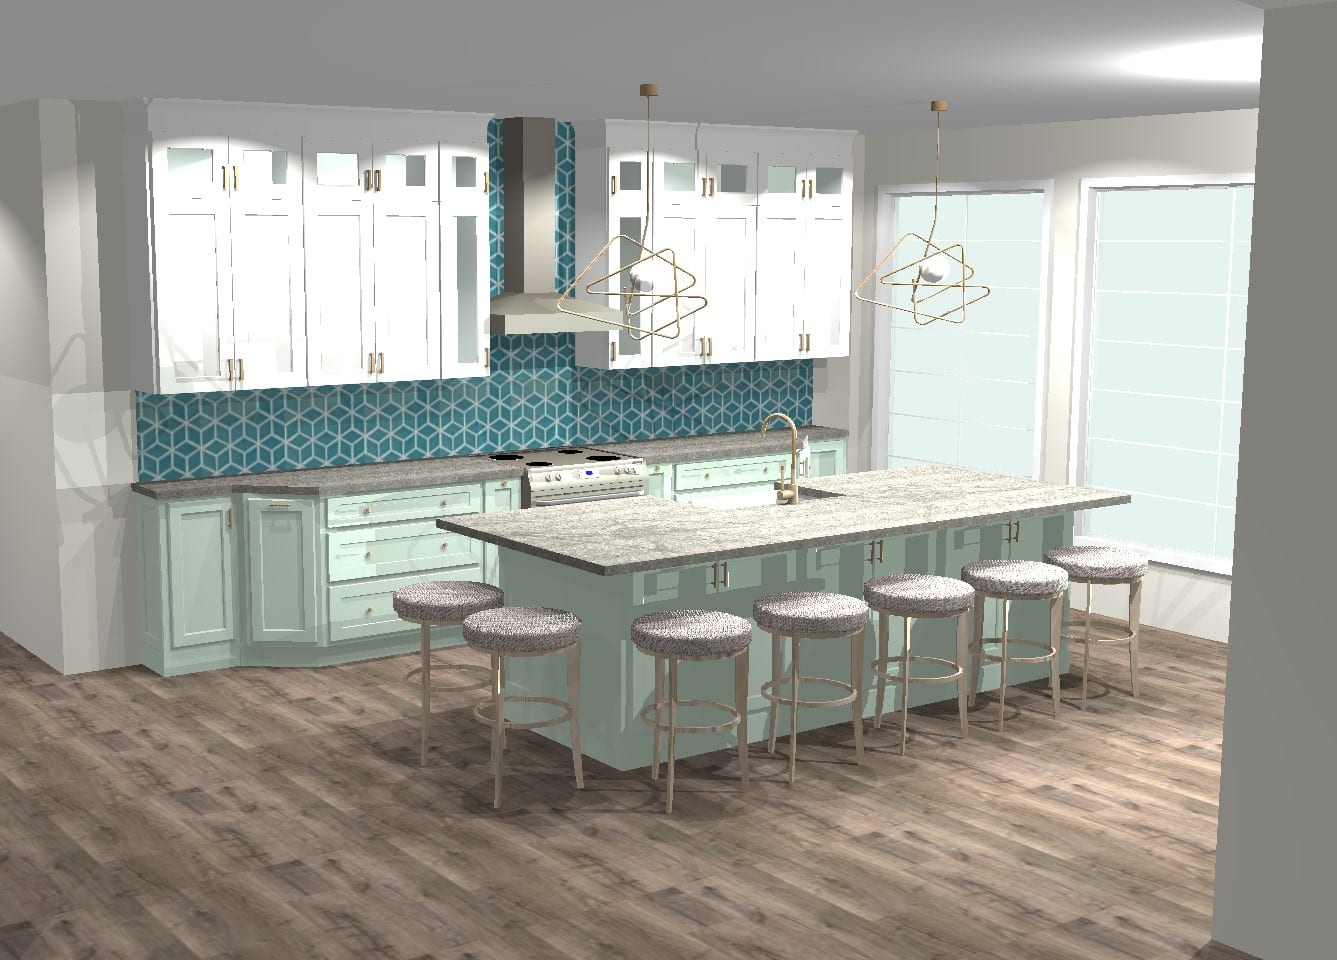 white, blue, green kitchen with wooden floor, white cabinets, and gold hanging